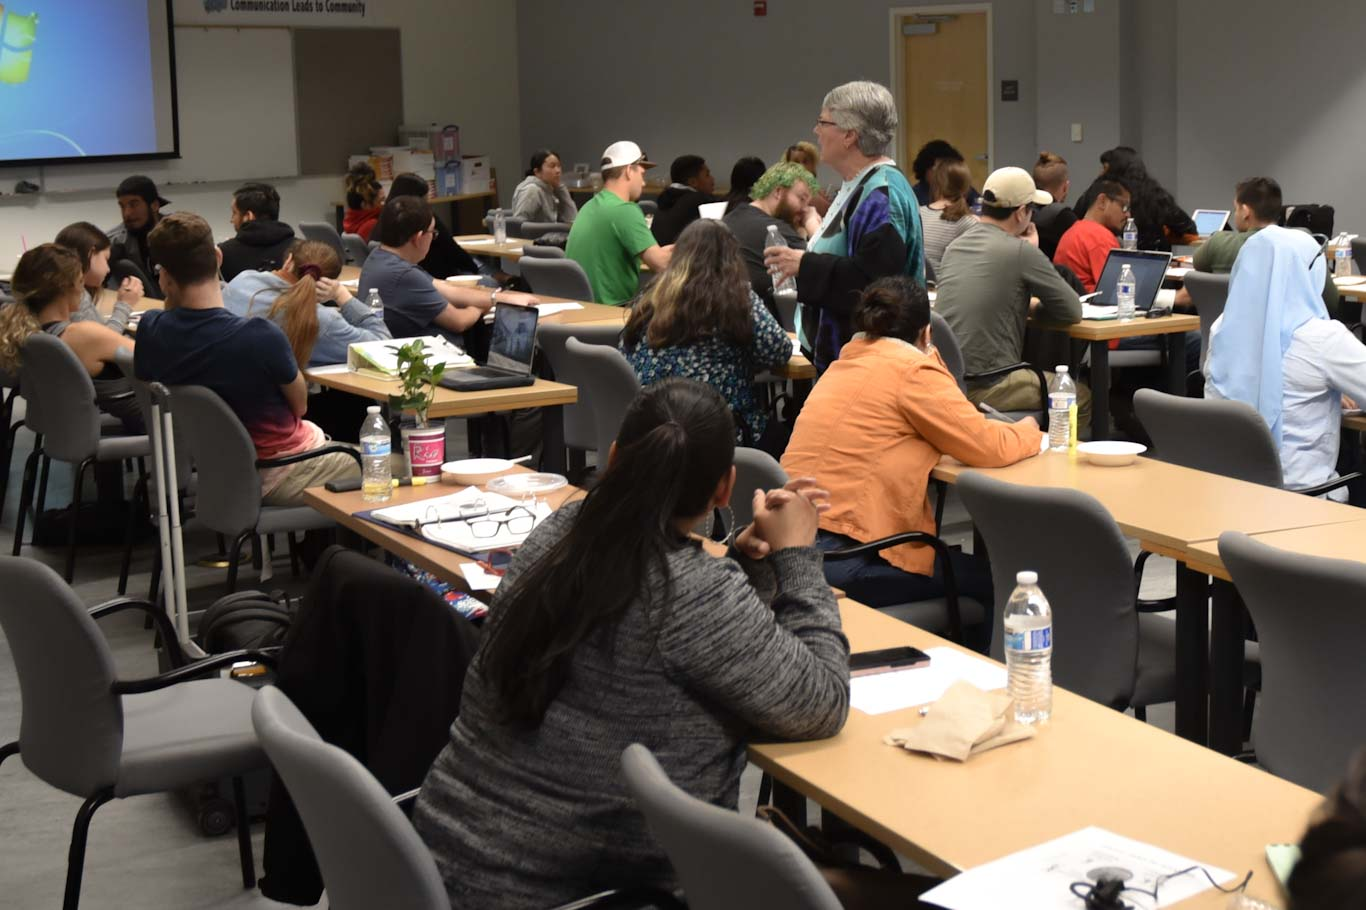 About 70 San Joaquin Delta College students completed a series of workshops to help them gain leadership skills.